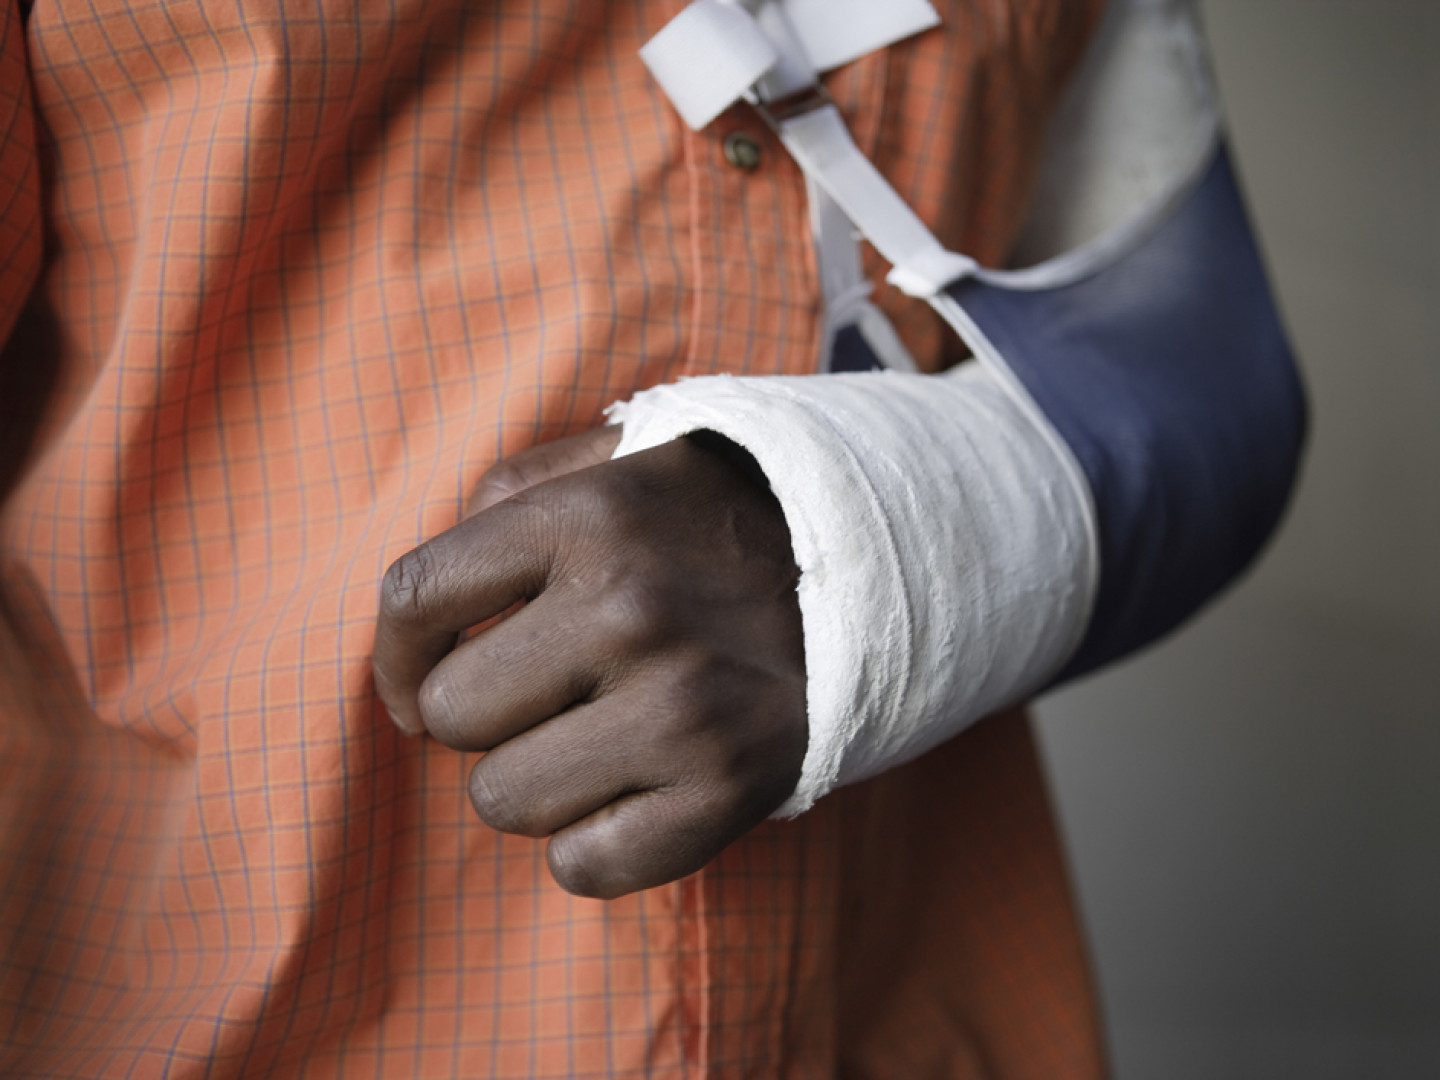 Injuries Can Have a Huge Impact On Your Life. A Personal Injury Attorney Can Help Get the Compensation You Deserve